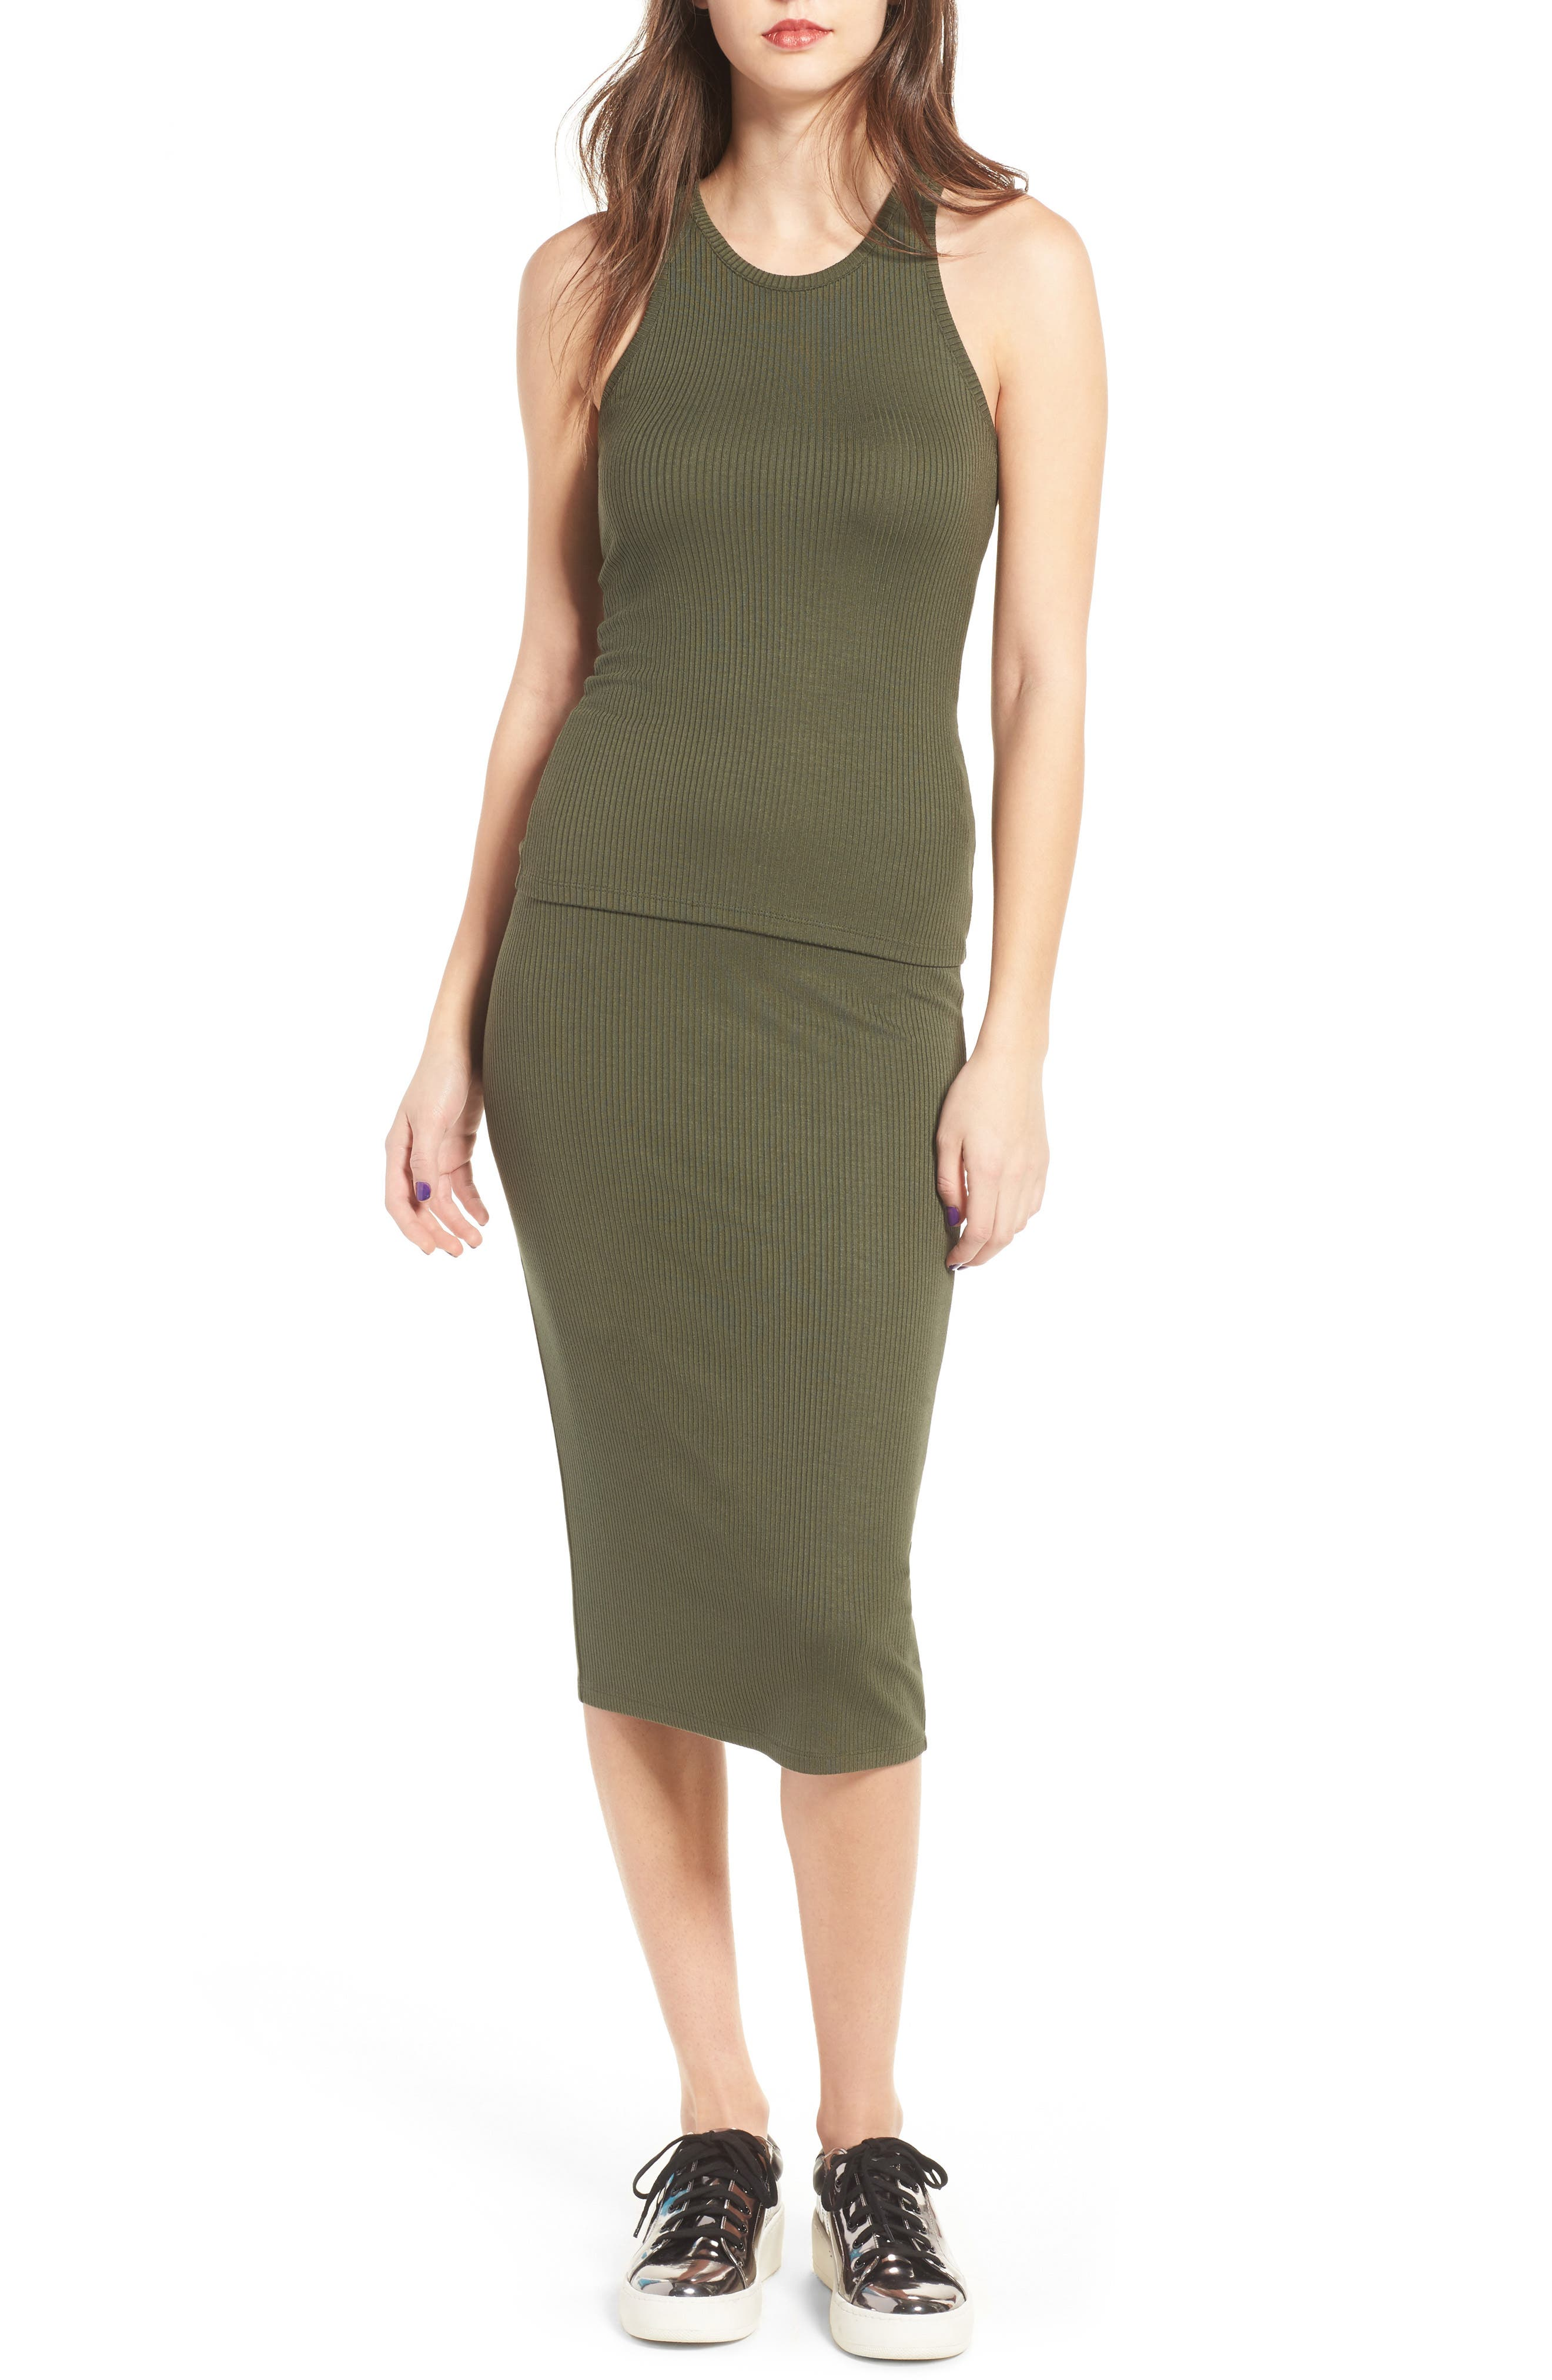 Rib Midi Skirt,                             Alternate thumbnail 2, color,                             Olive Sarma